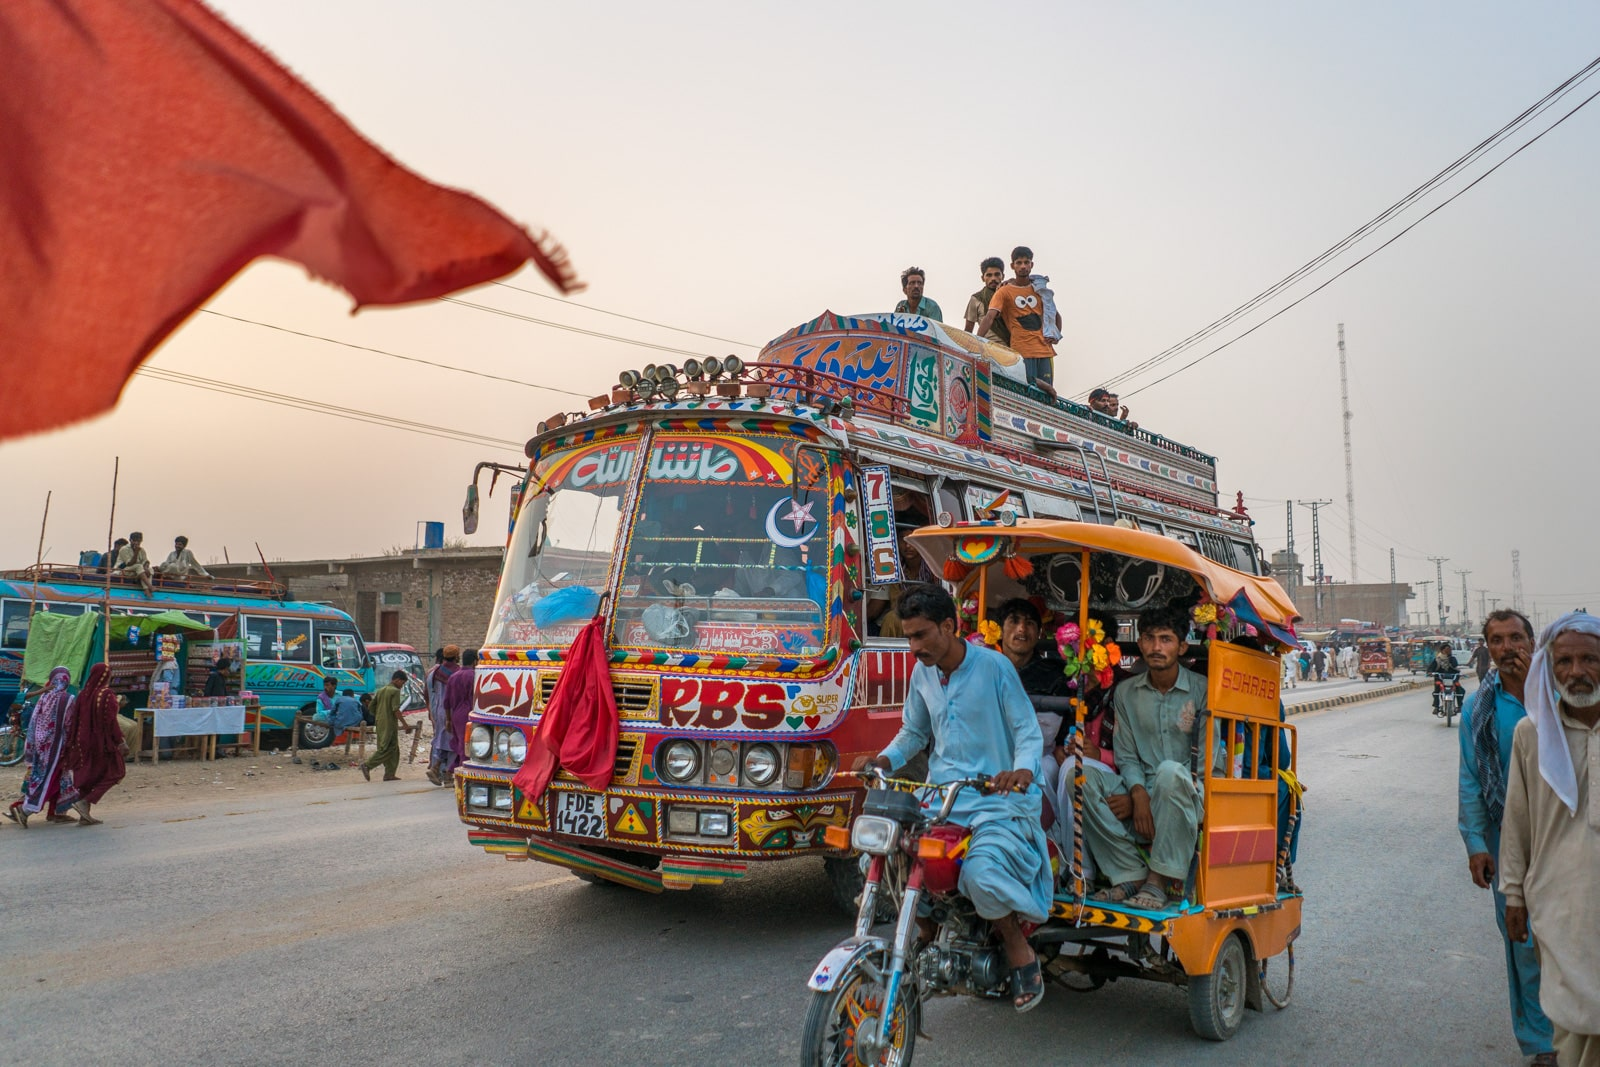 A rickshaw and a local bus transporting people in Pakistan